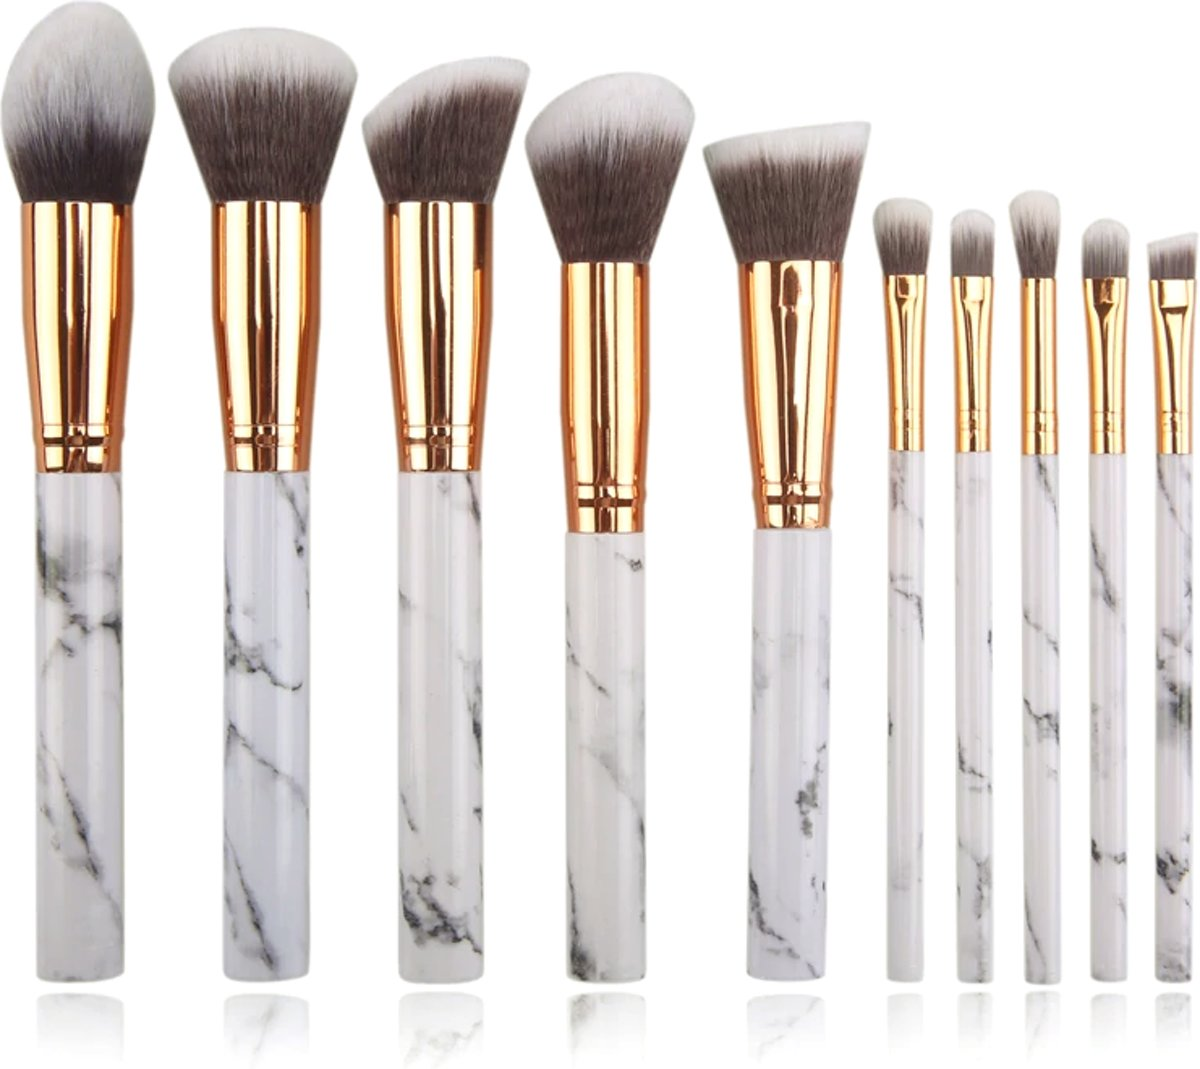 10-delige Make-up Kwasten/Brush Set | Marble / Marmer | Fashion Favorite